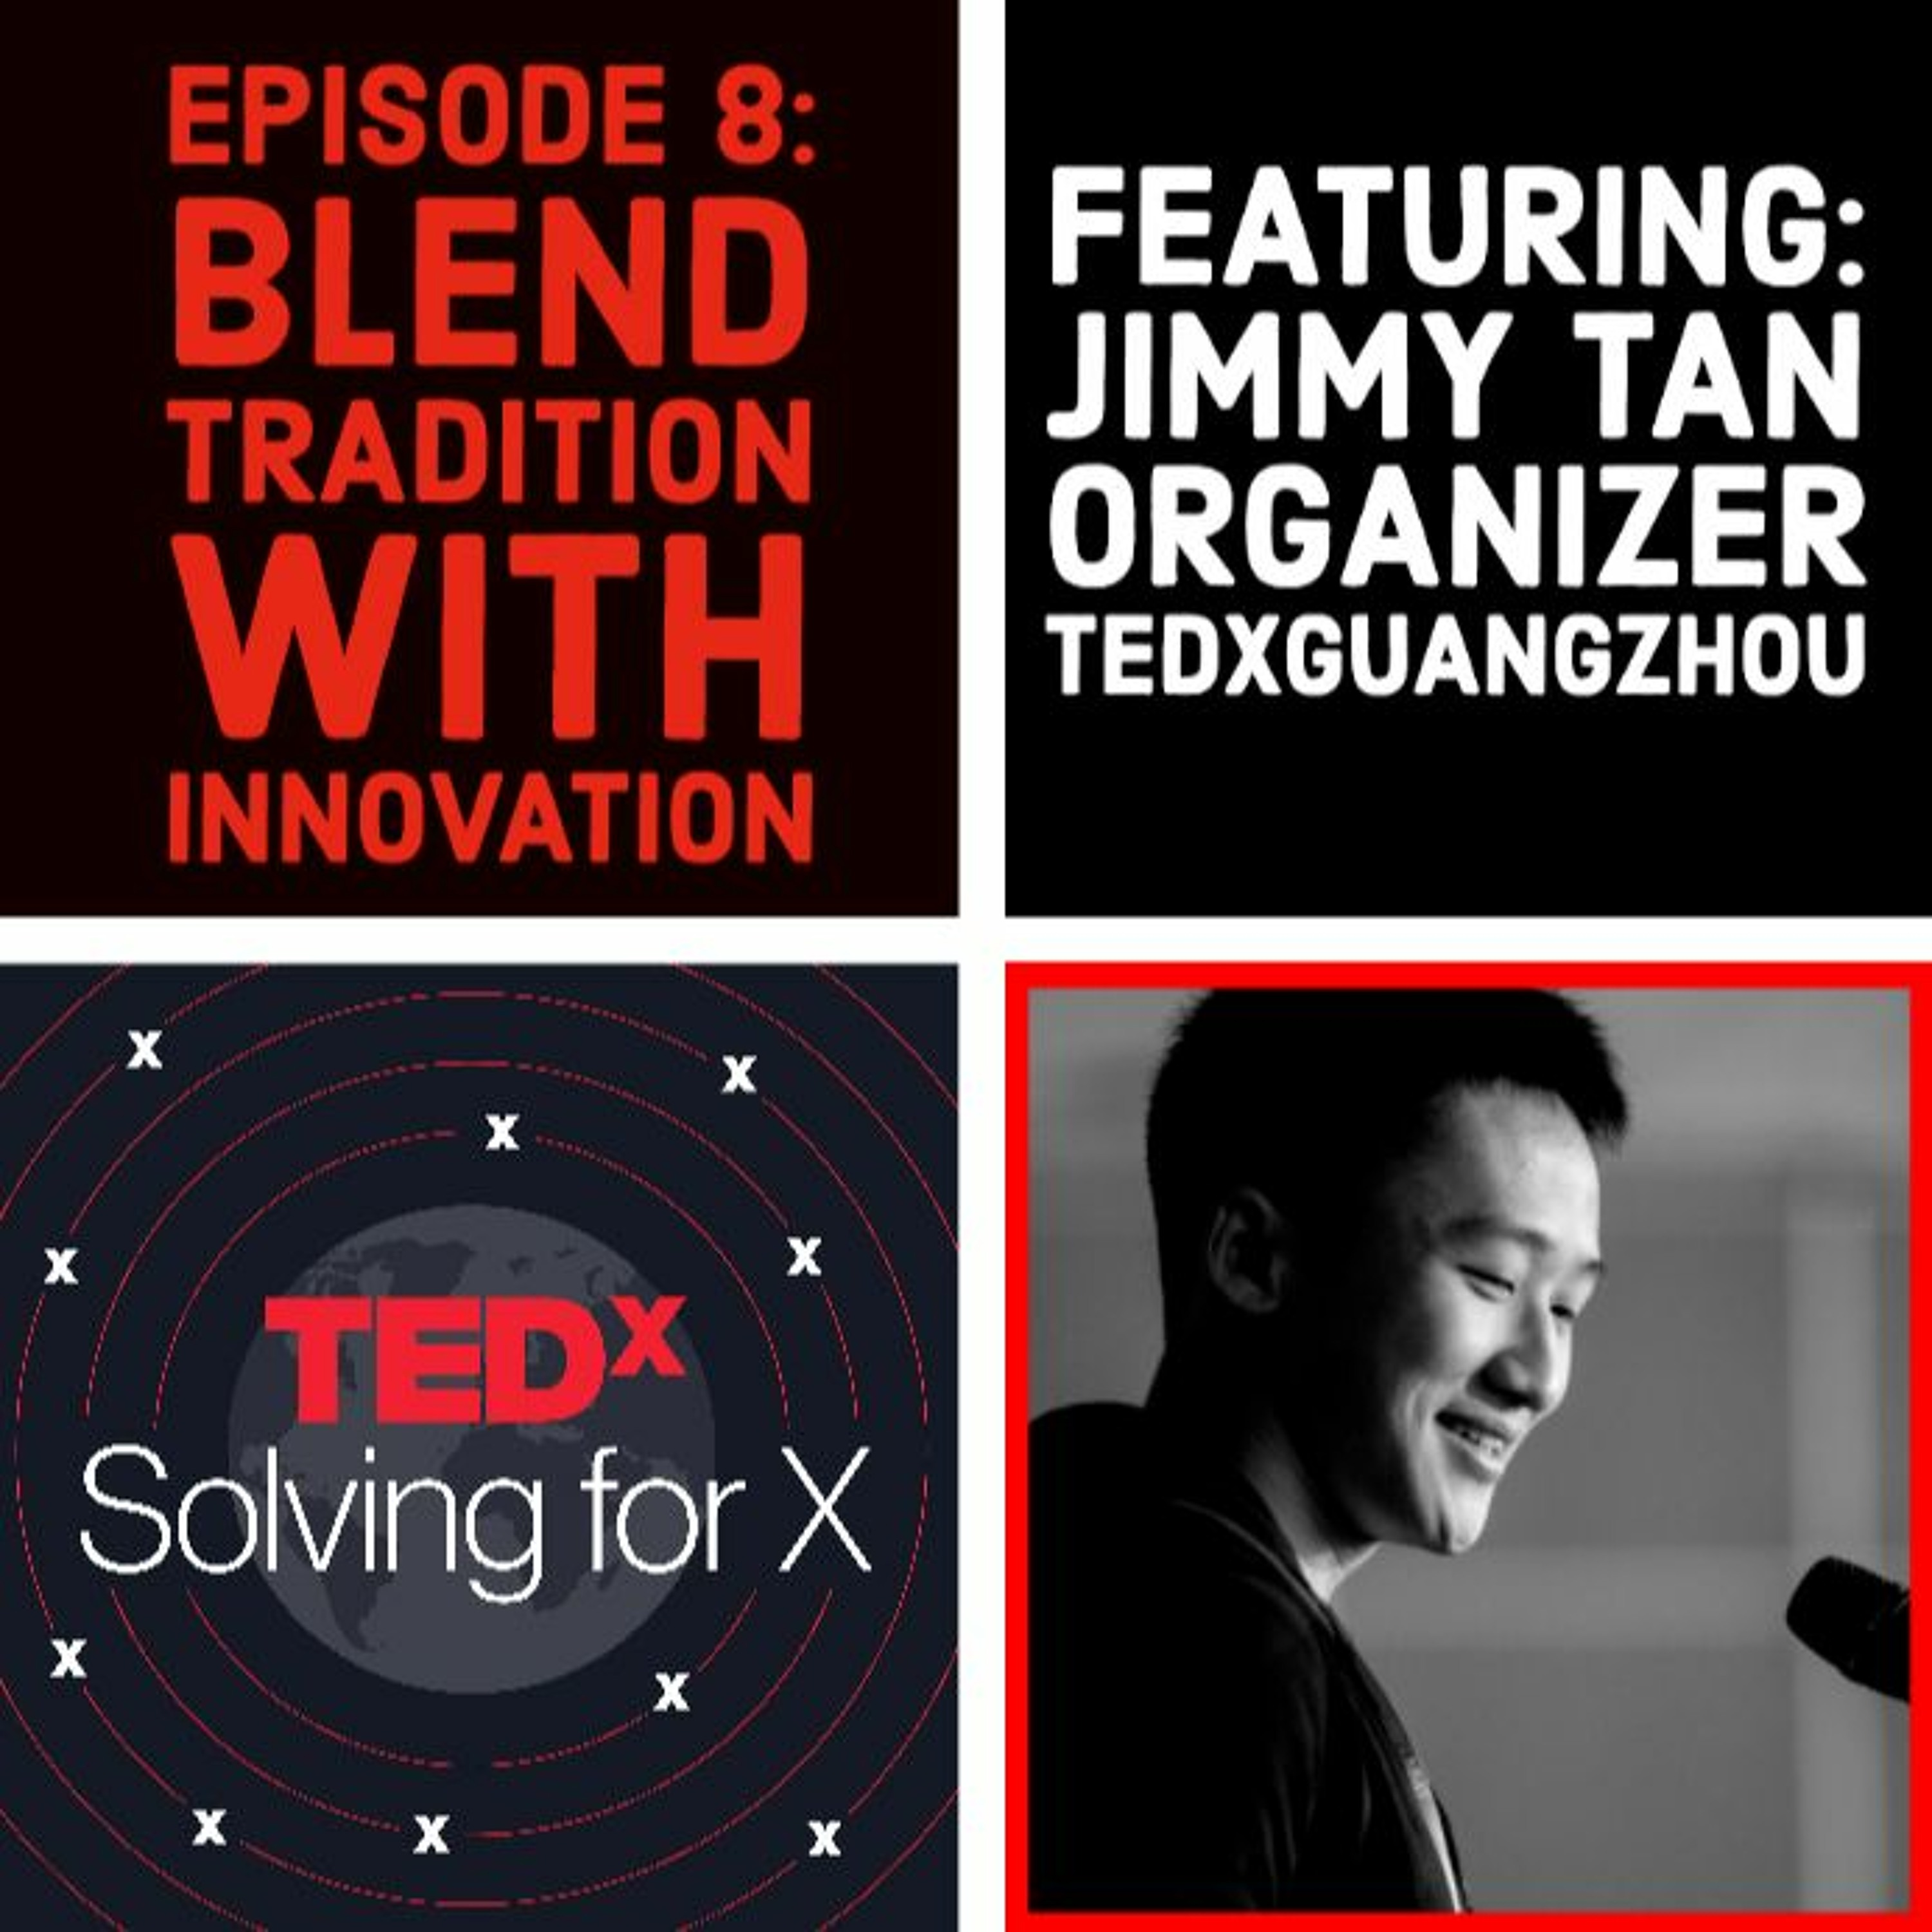 Blend tradition and innovation — Jimmy Tan, TEDxGuangzhou